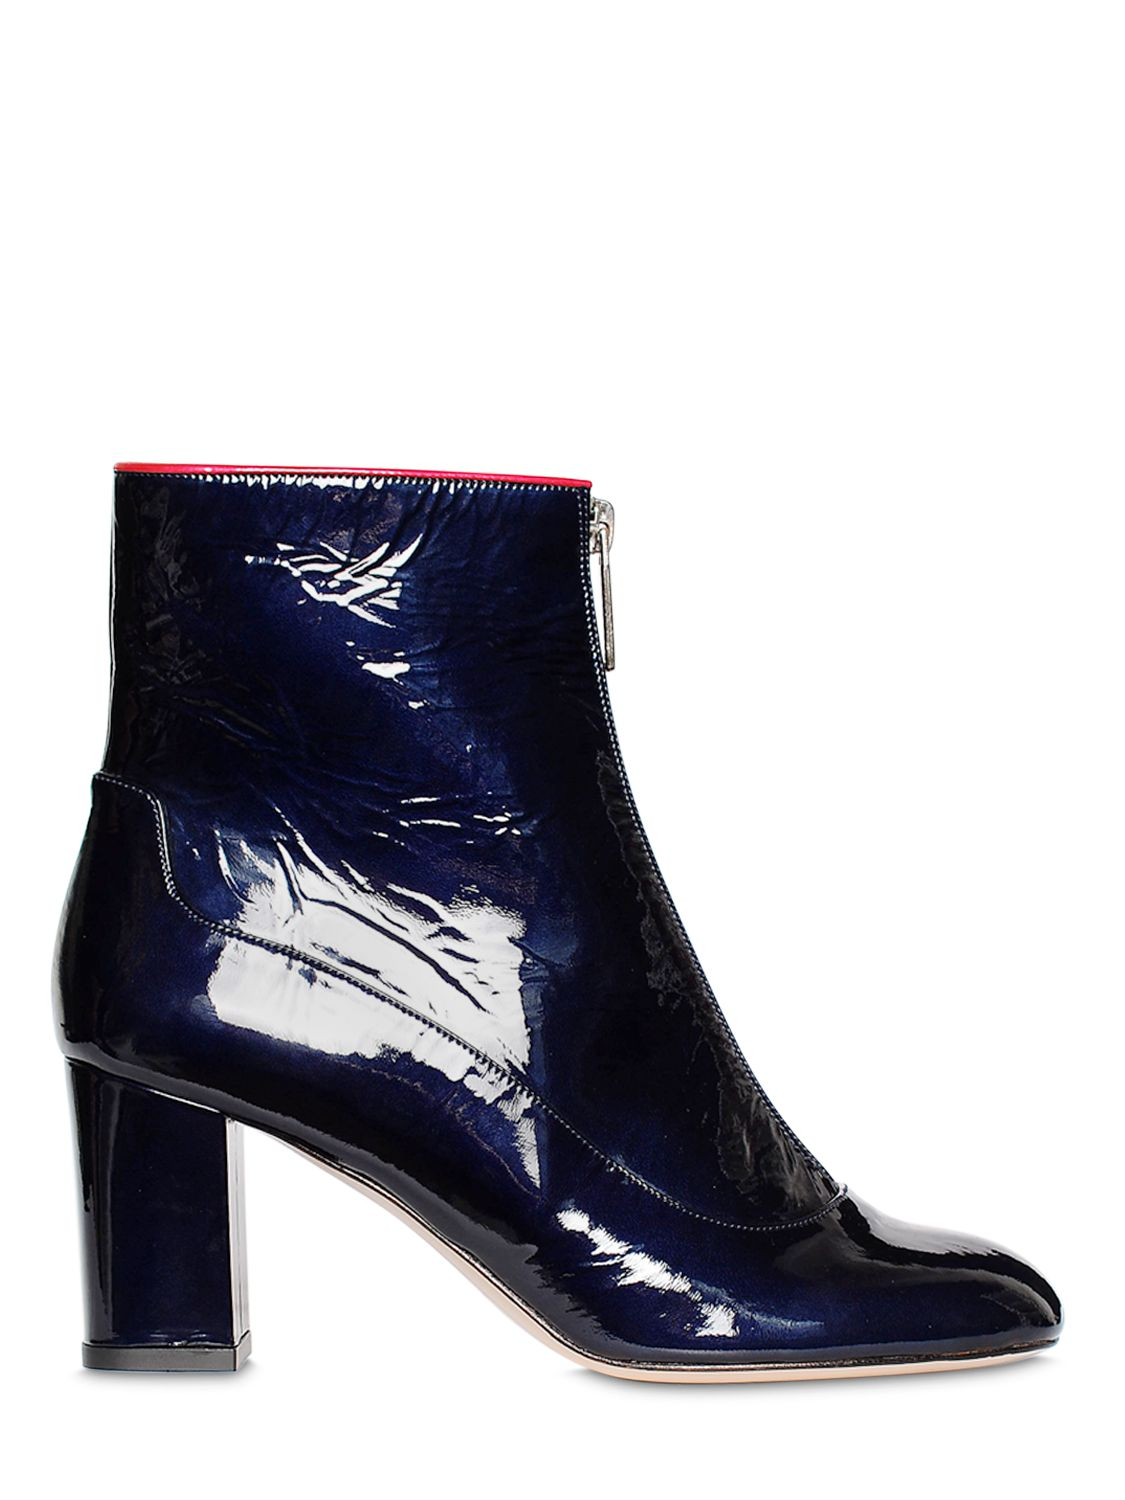 538931909655d Camilla Elphick 75mm Zip Me Up Patent Leather Boots in Blue - Lyst